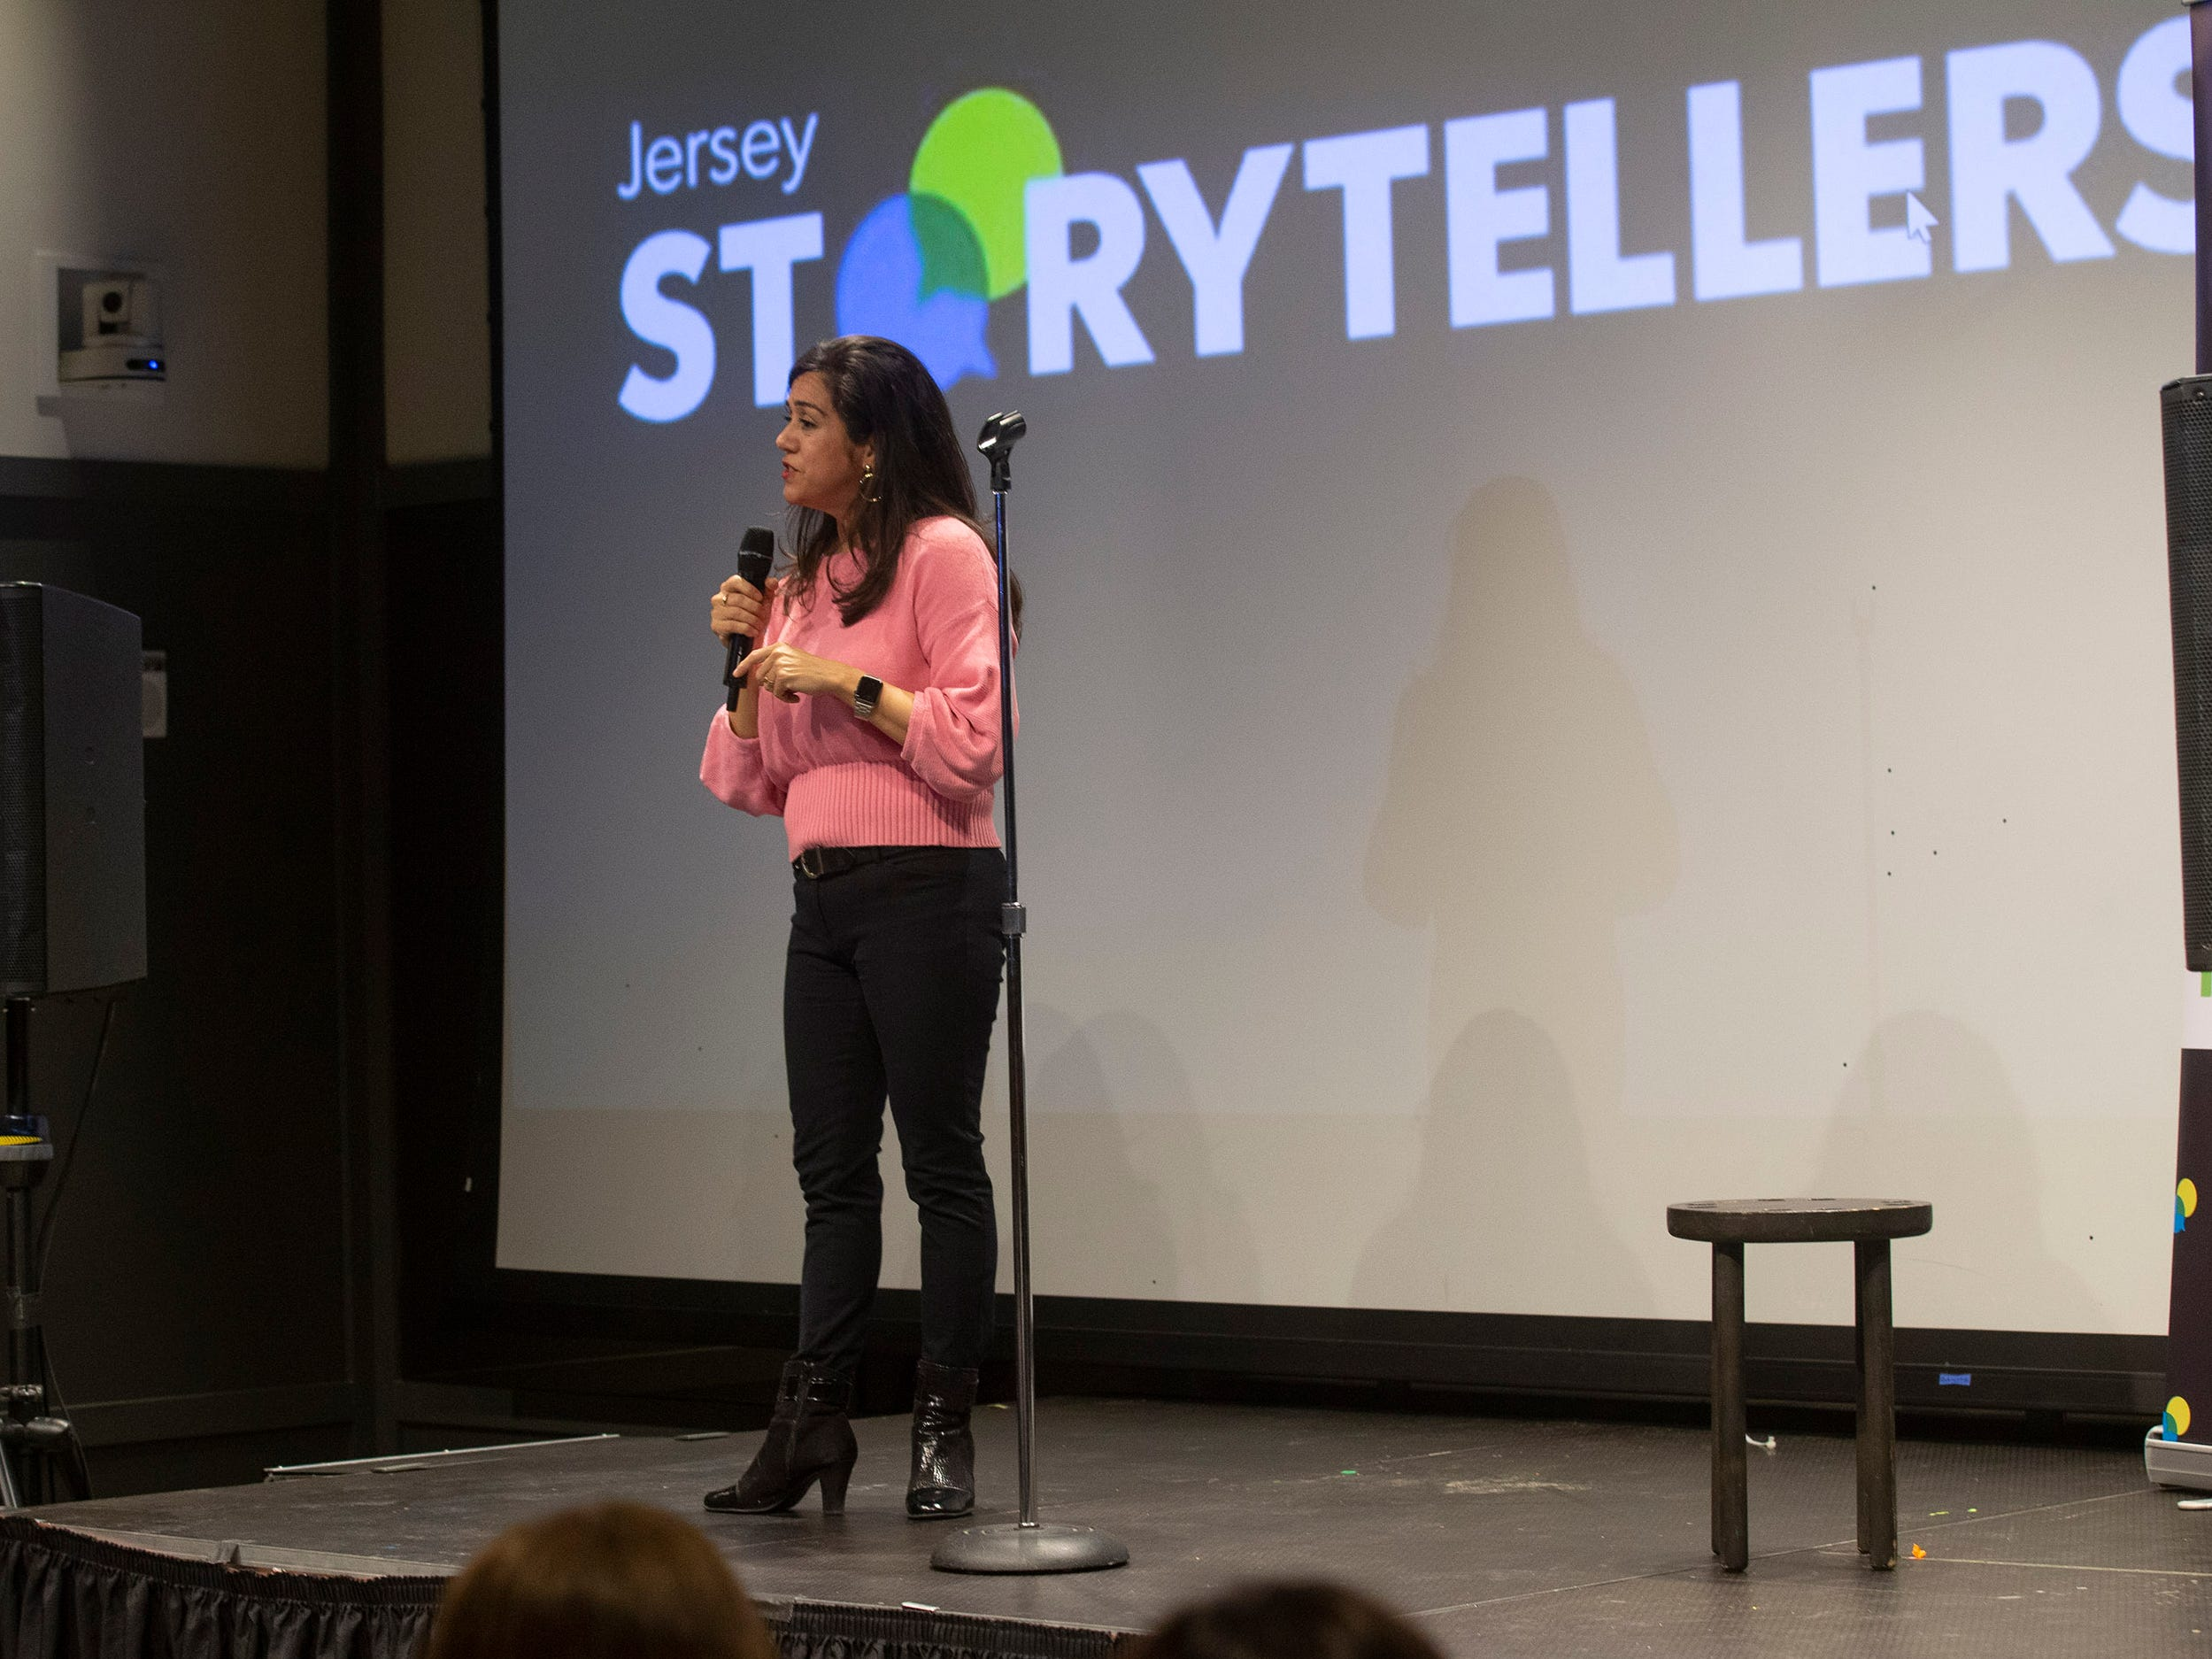 Storyteller Cynthia Salinas tells her story.  Speakers and crowds alike enjoy the latest version of Storytellers in Asbury Park on February 27, 2019, this night's subject was starting over.